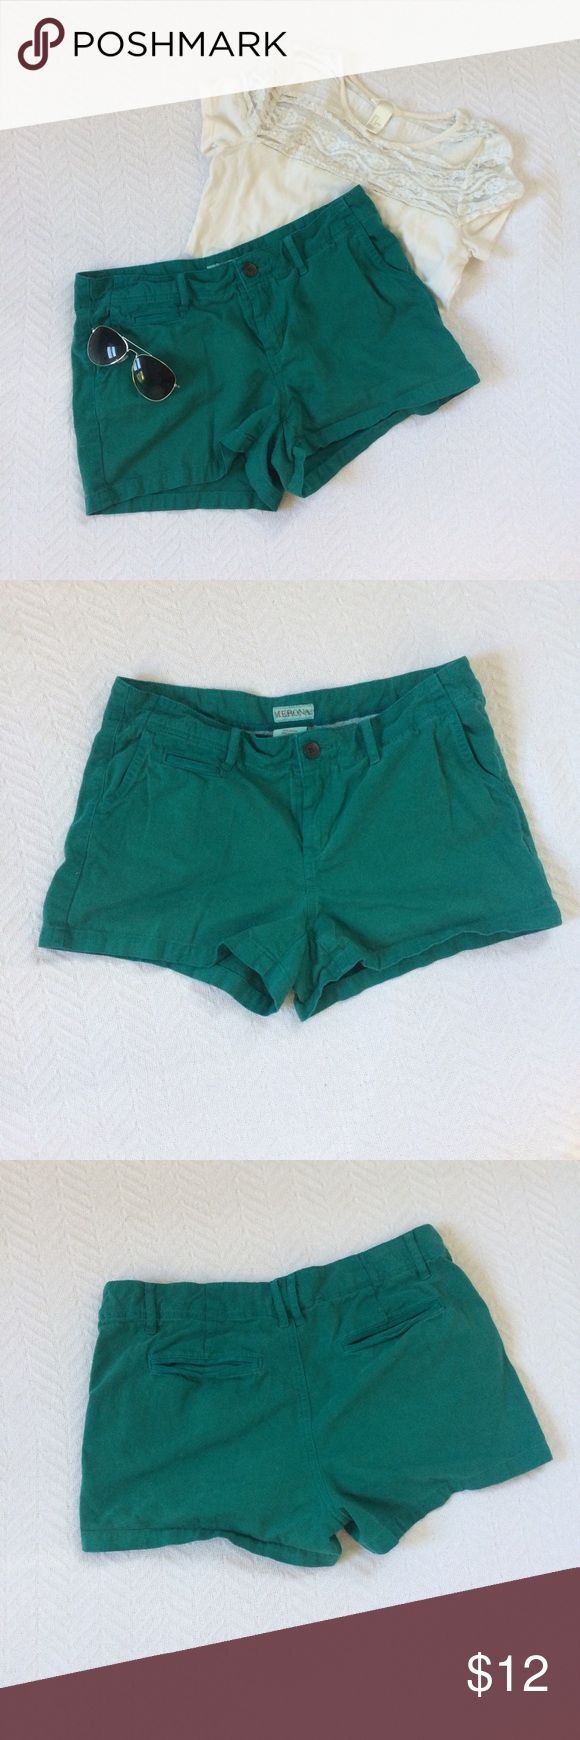 Teal/Aqua Shorts Teal/Aqua shorts worn once, super cute and has the best pockets ever {lots of room/storage}. Shorts